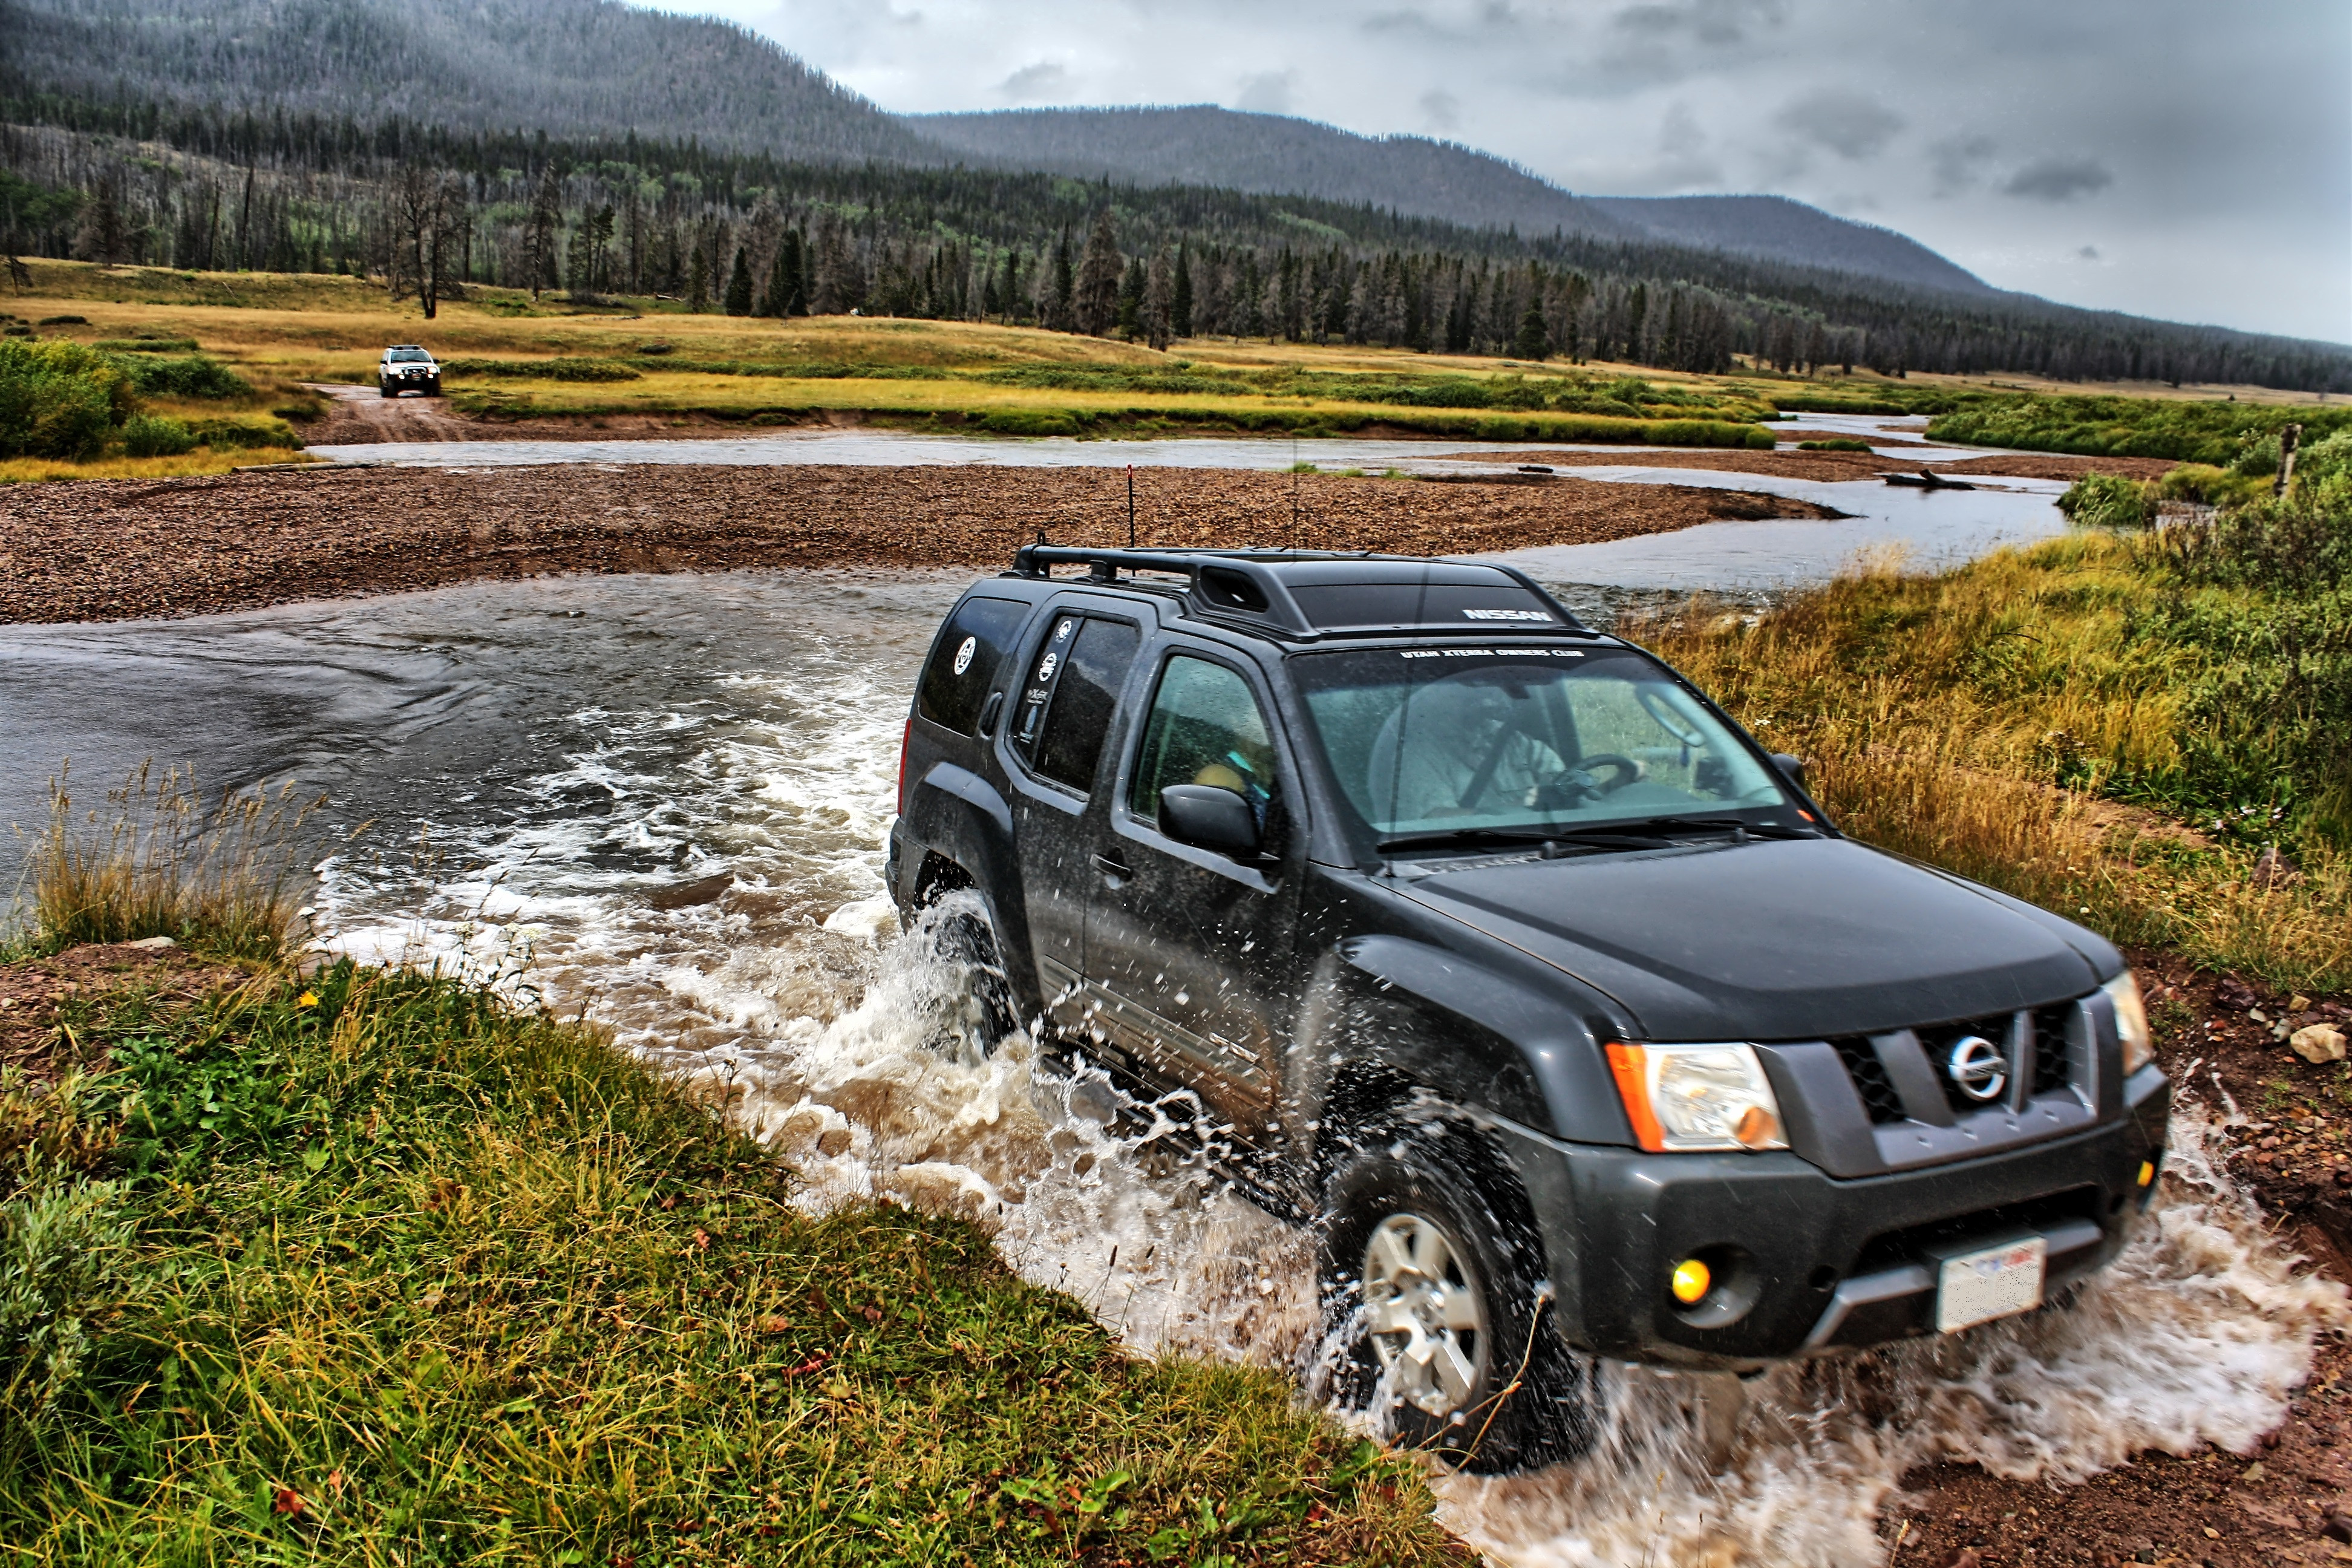 Xterra Reviews: Somewhere near the Utah/Wyoming border